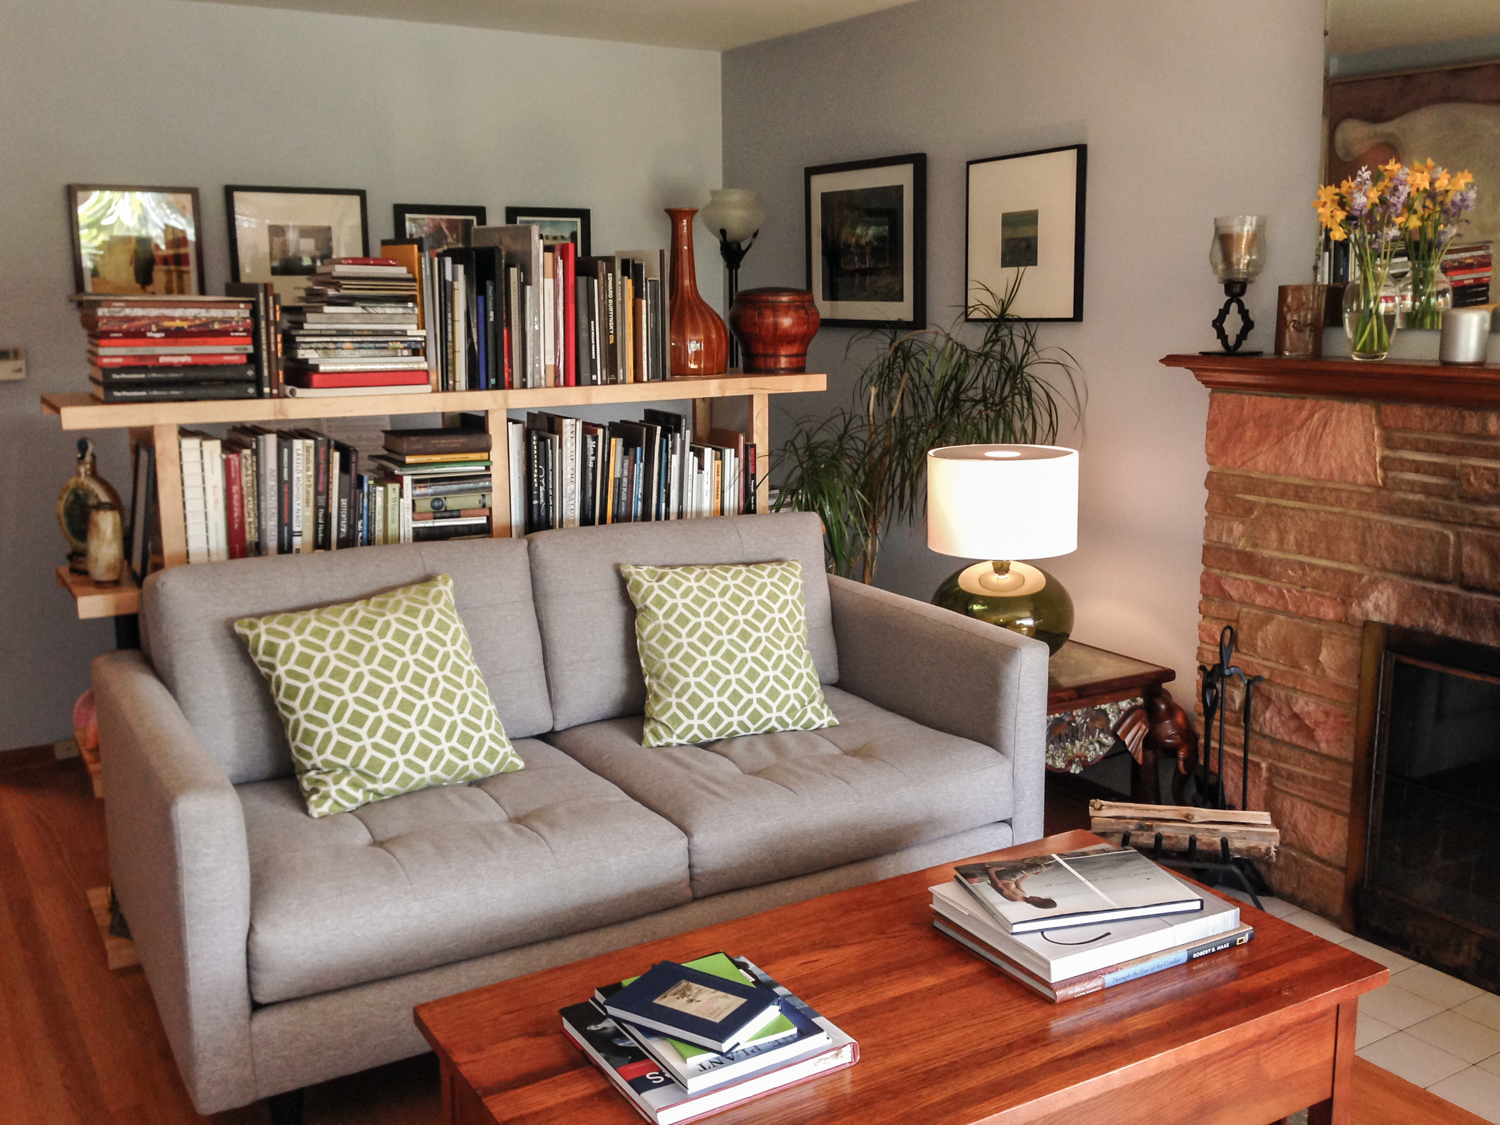 Dan Shepherd 's comfortable reading room.